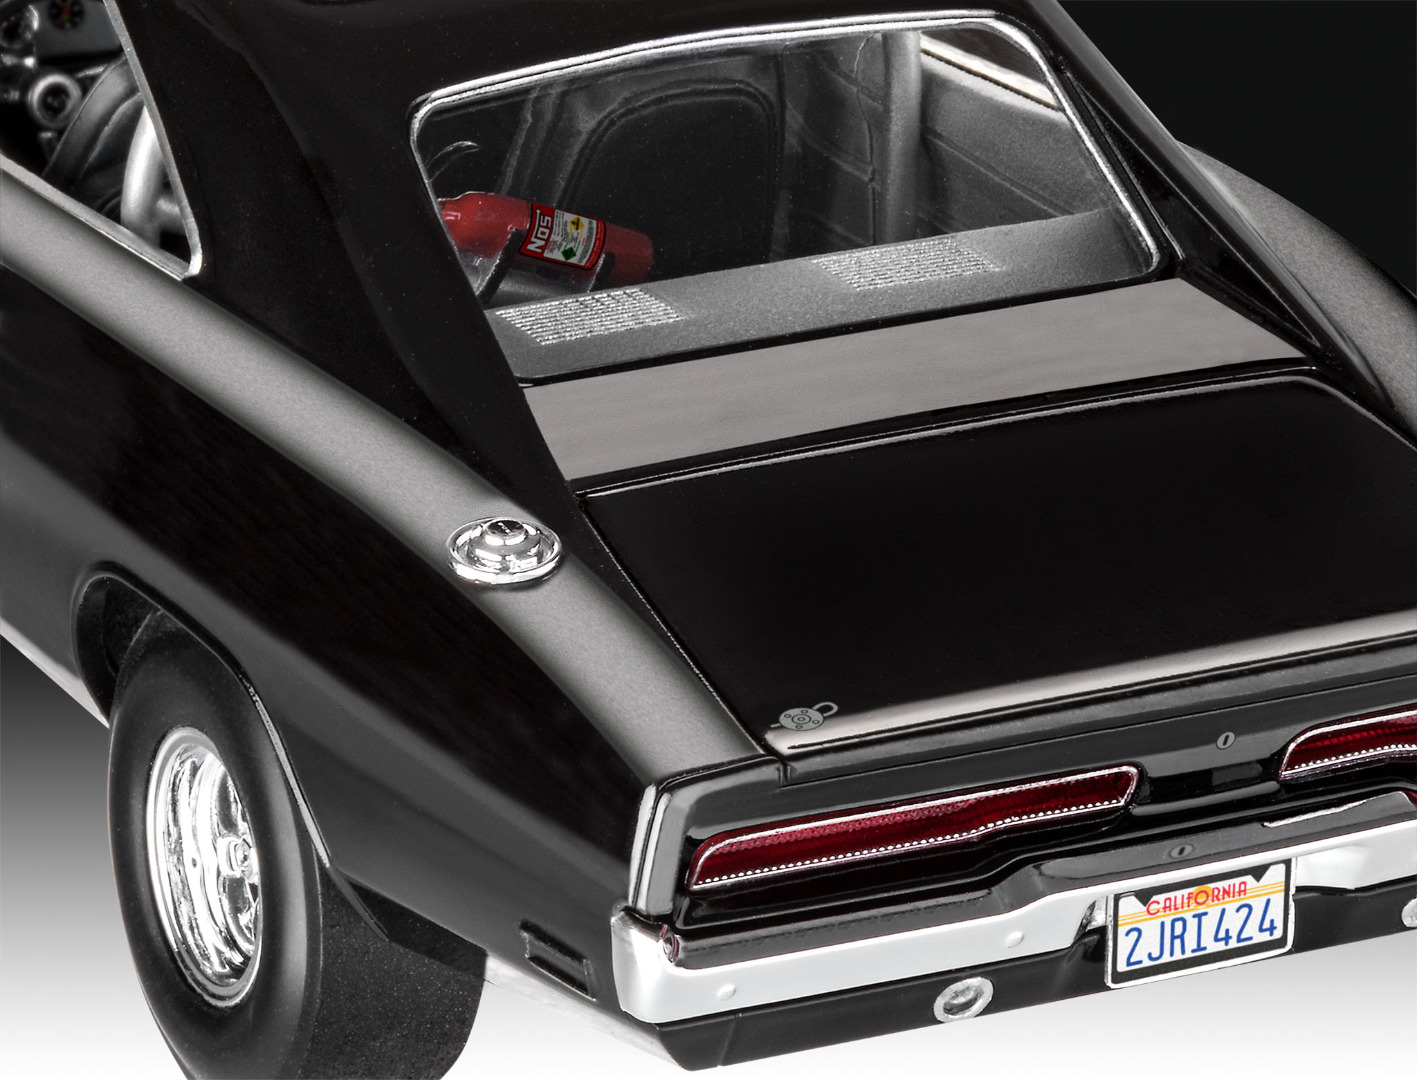 Revell Model Kit Fast & Furious - Dominics 1970 Dodge Charger 1:25